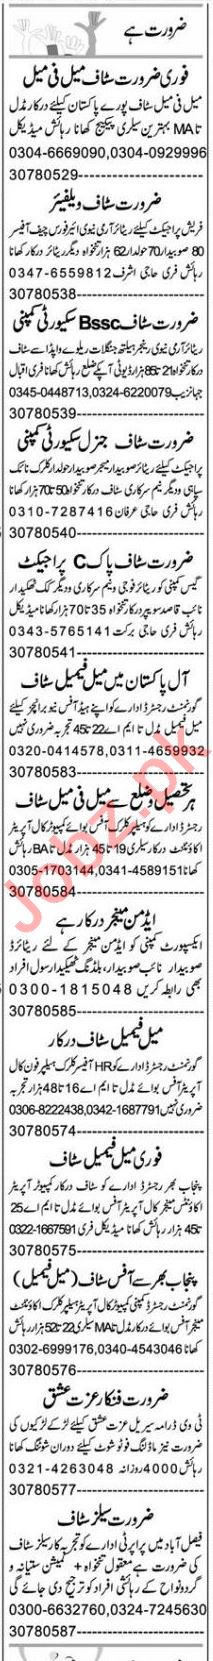 HR Officer & Assistant Manager Jobs 2021 in Faisalabad